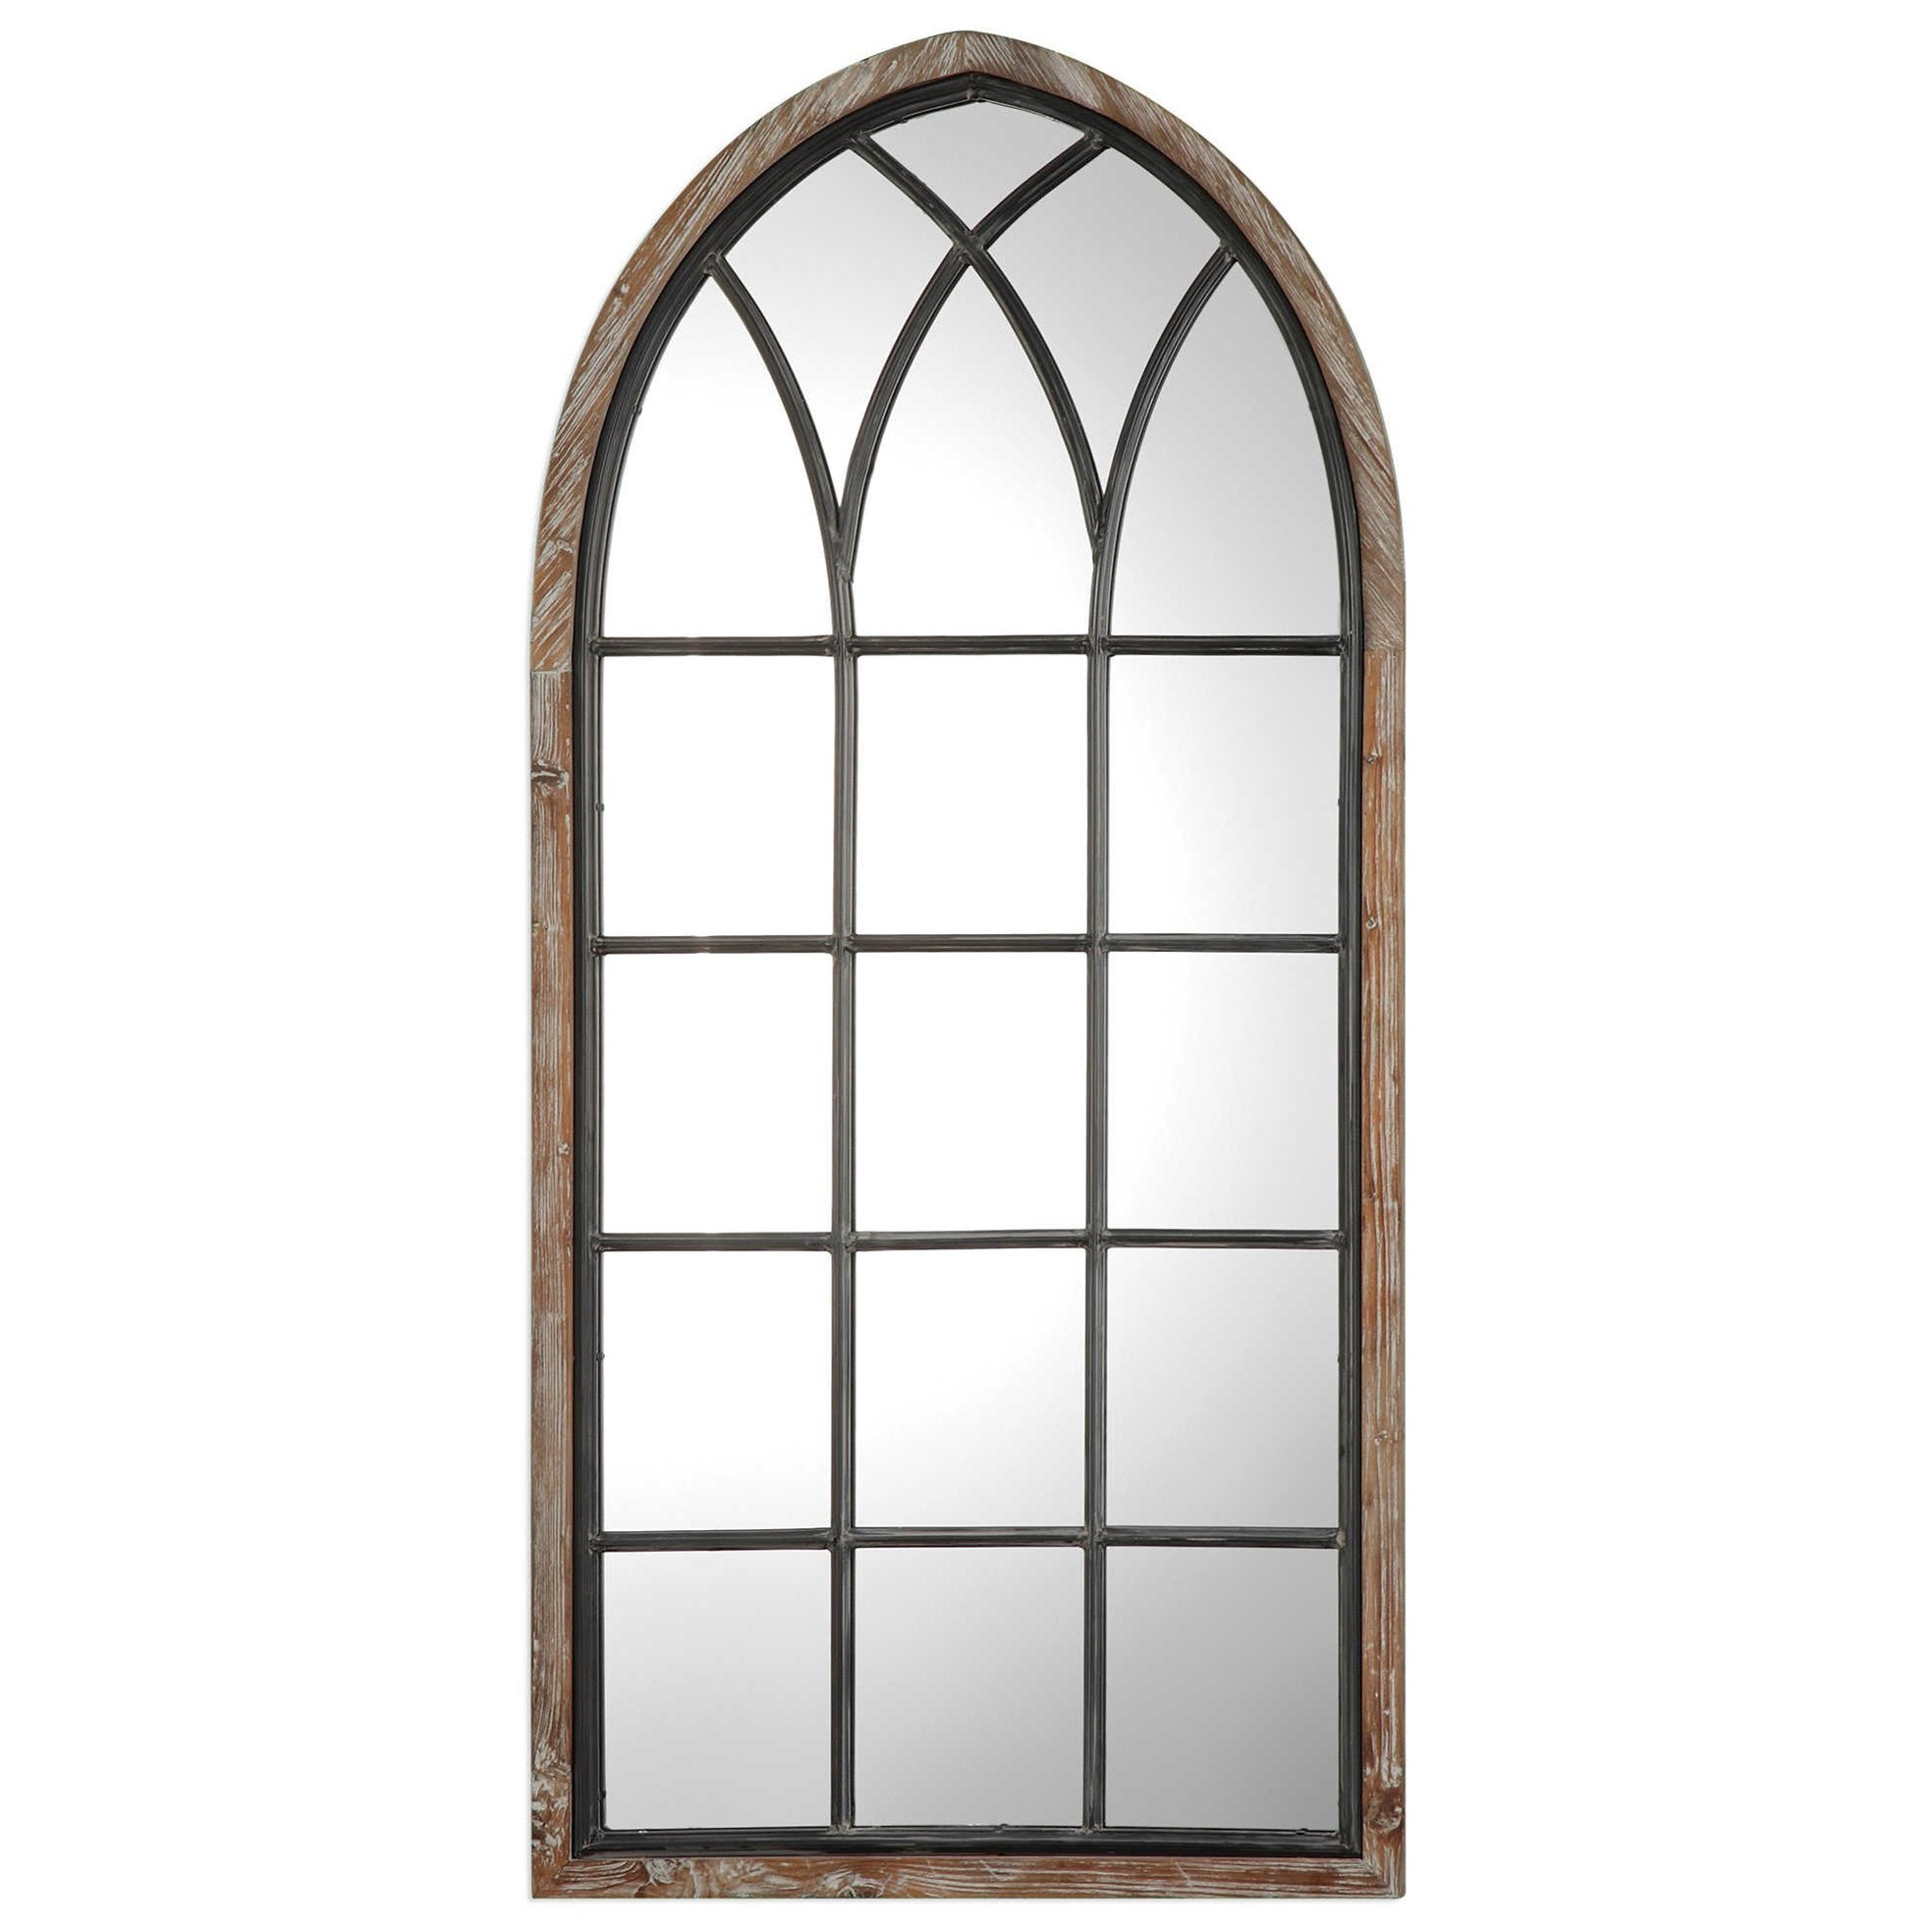 Arched Mirrors Montone Arched Mirror by Uttermost at Miller Waldrop Furniture and Decor